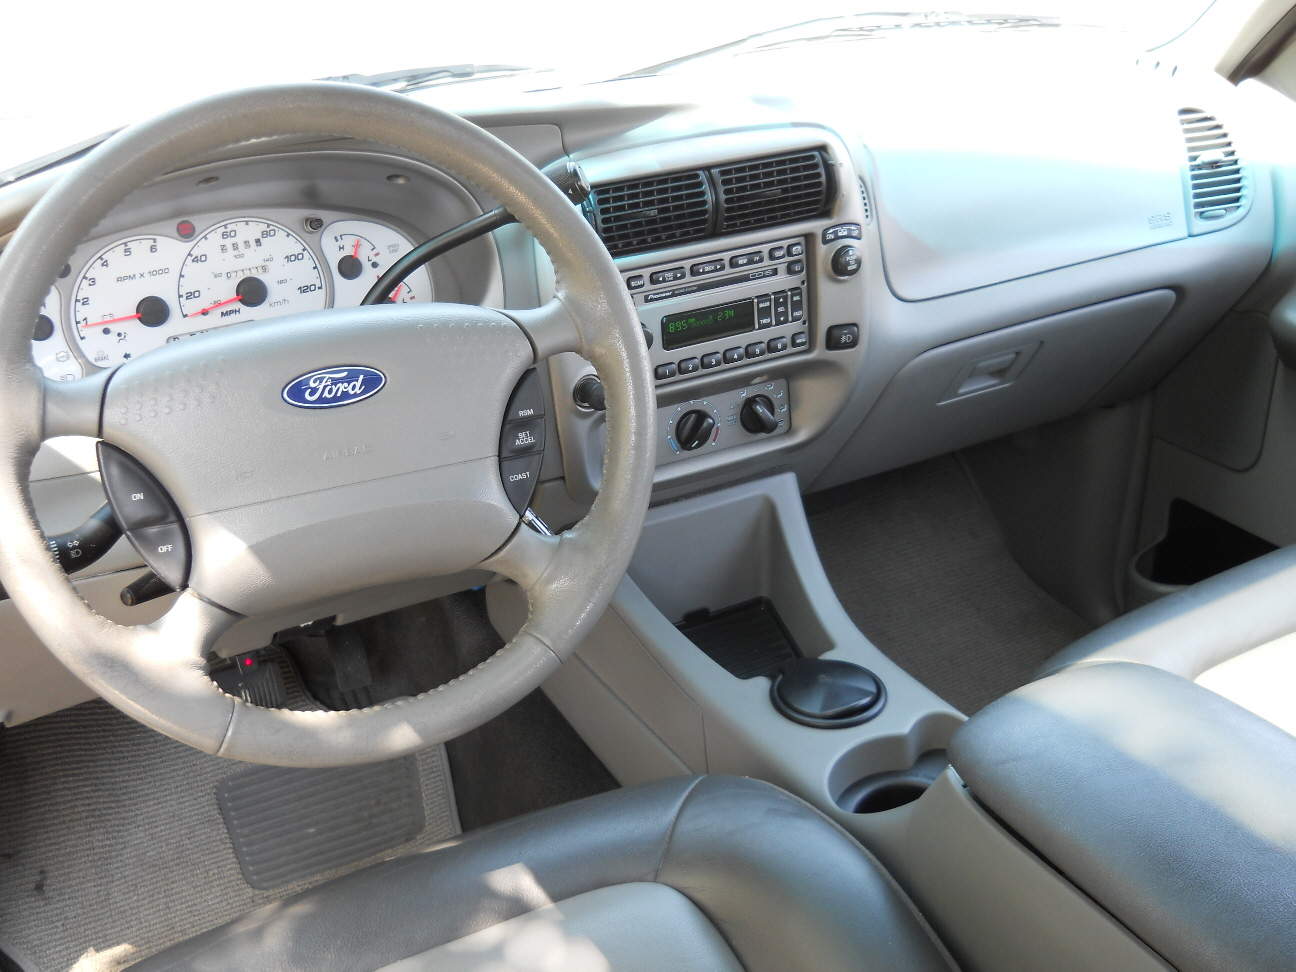 Ford Explorer Sport Trac interior #1